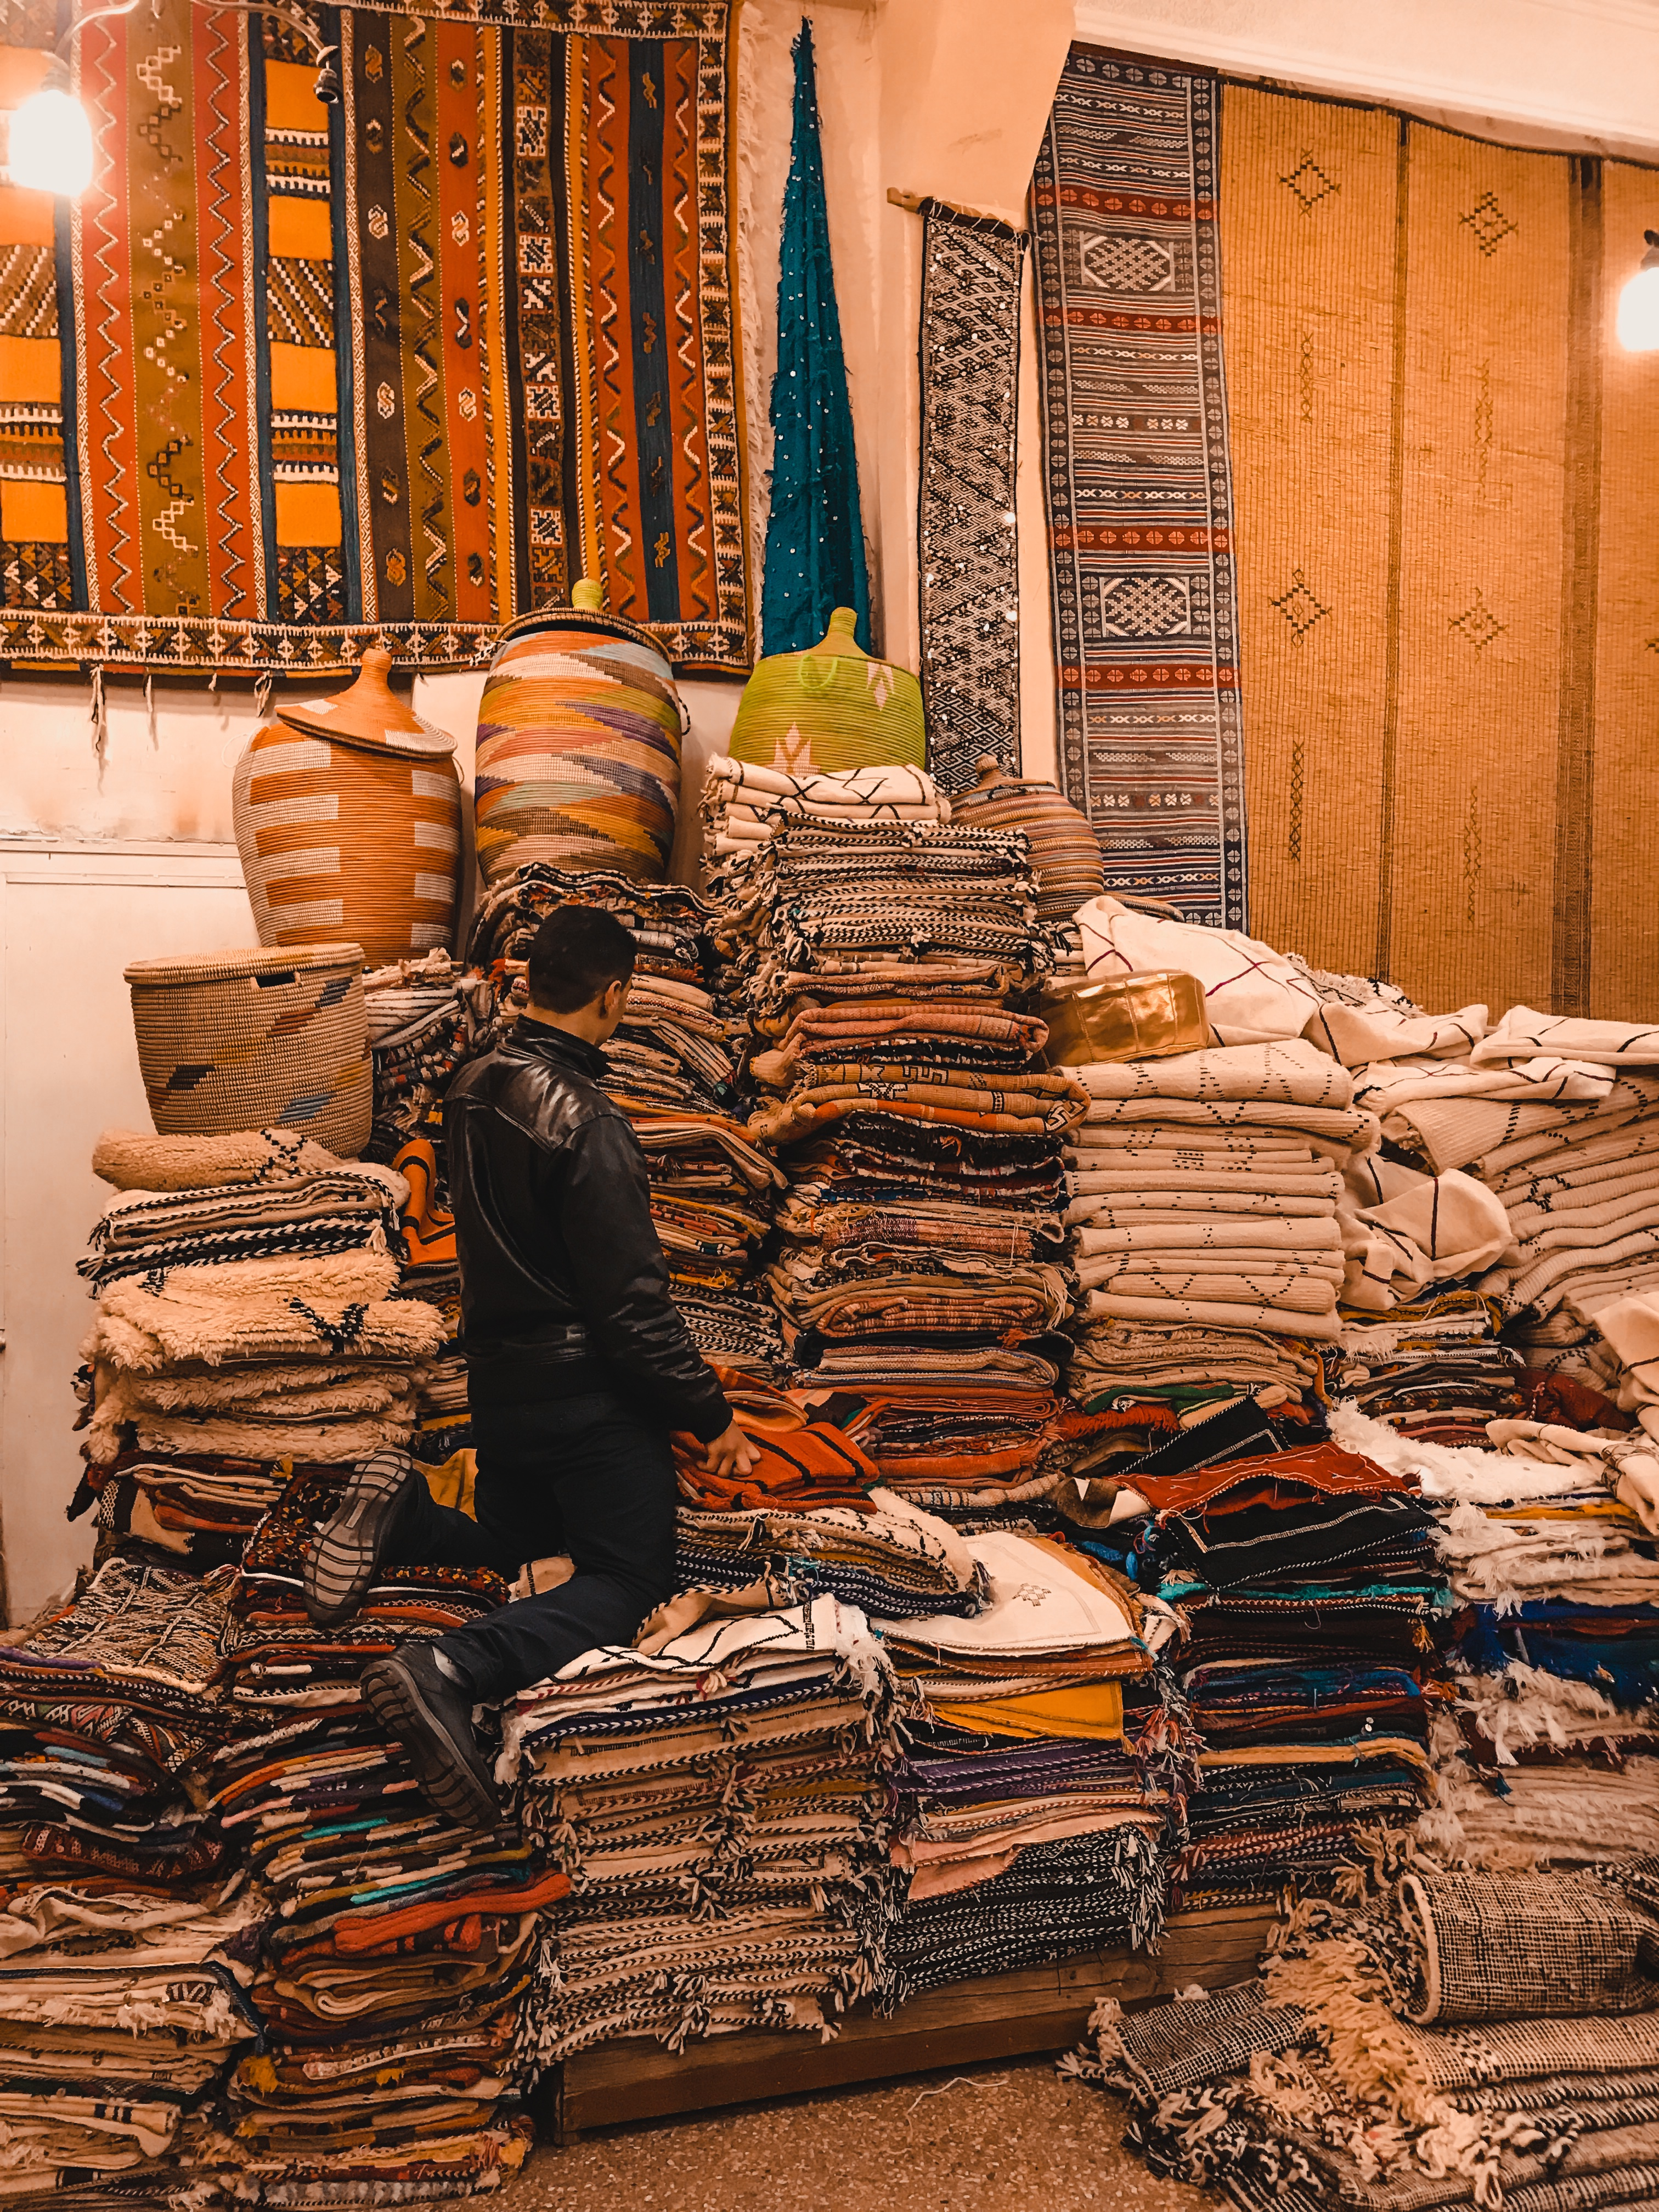 shopping for souvenirs in Morocco